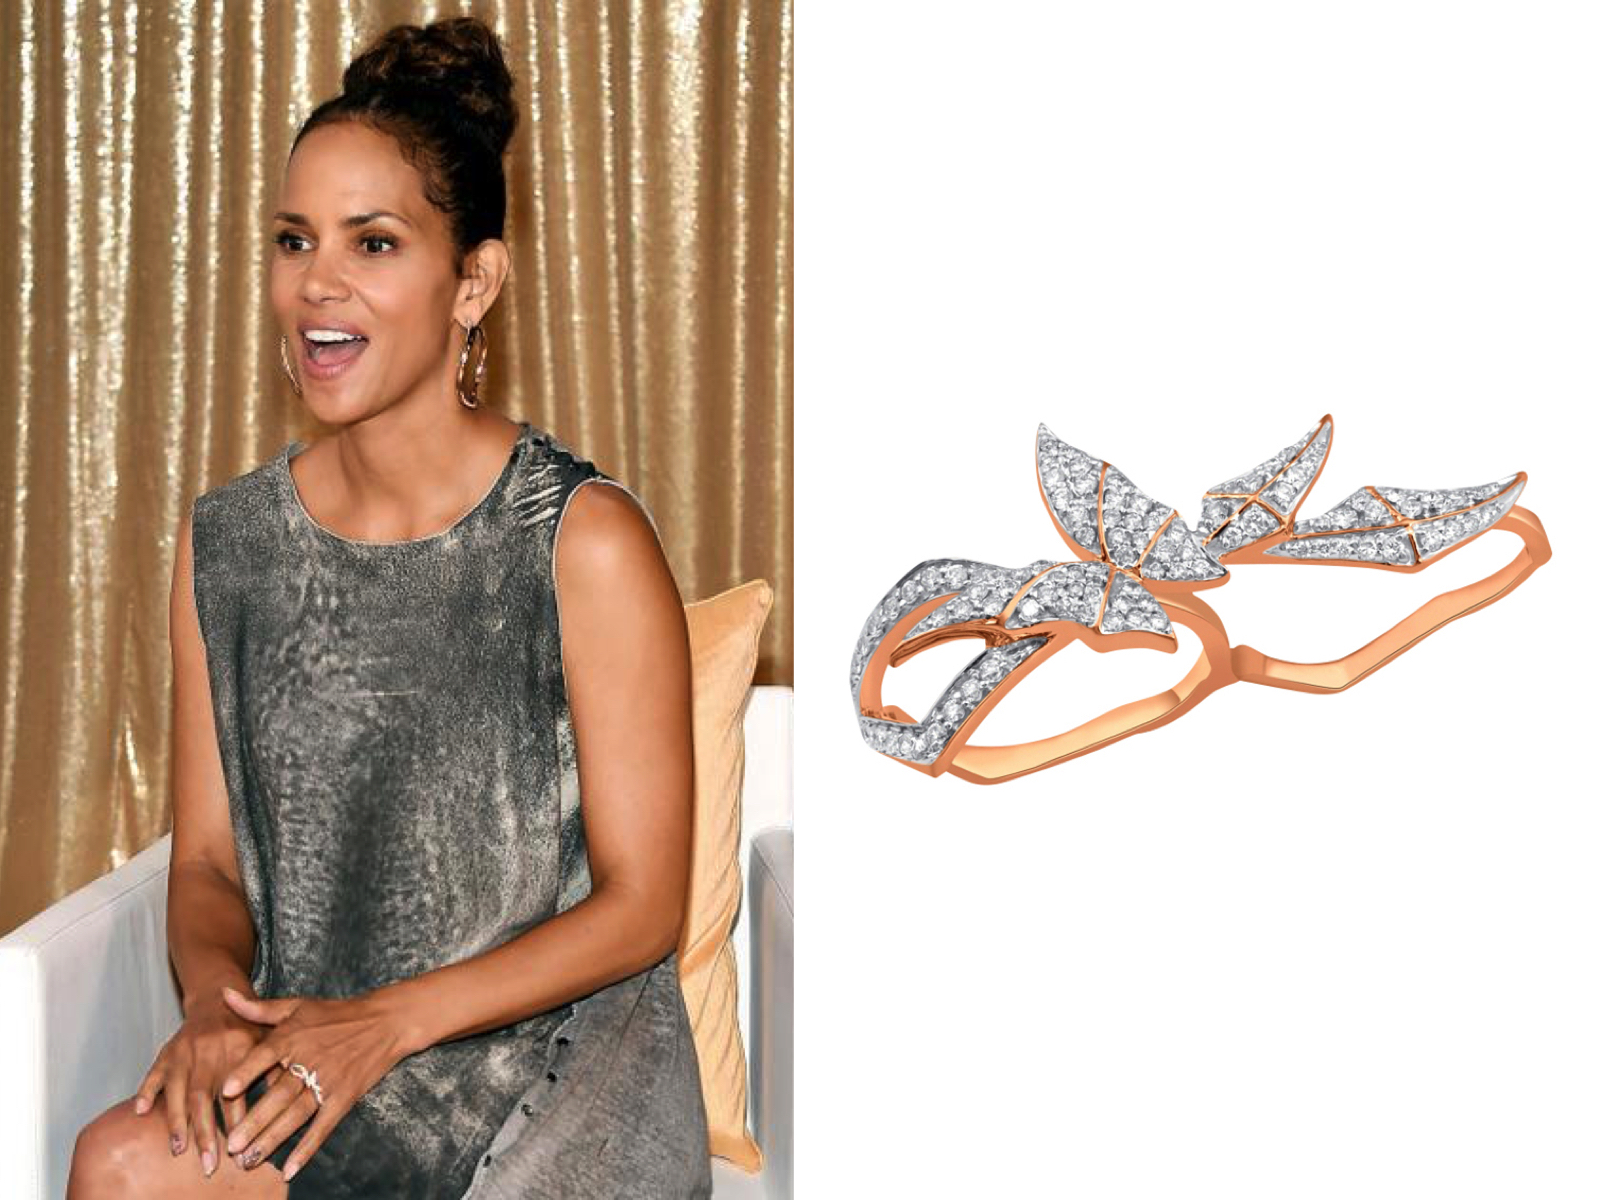 FAYE Double Ring Narcisa Pheres worn by Halle Berry